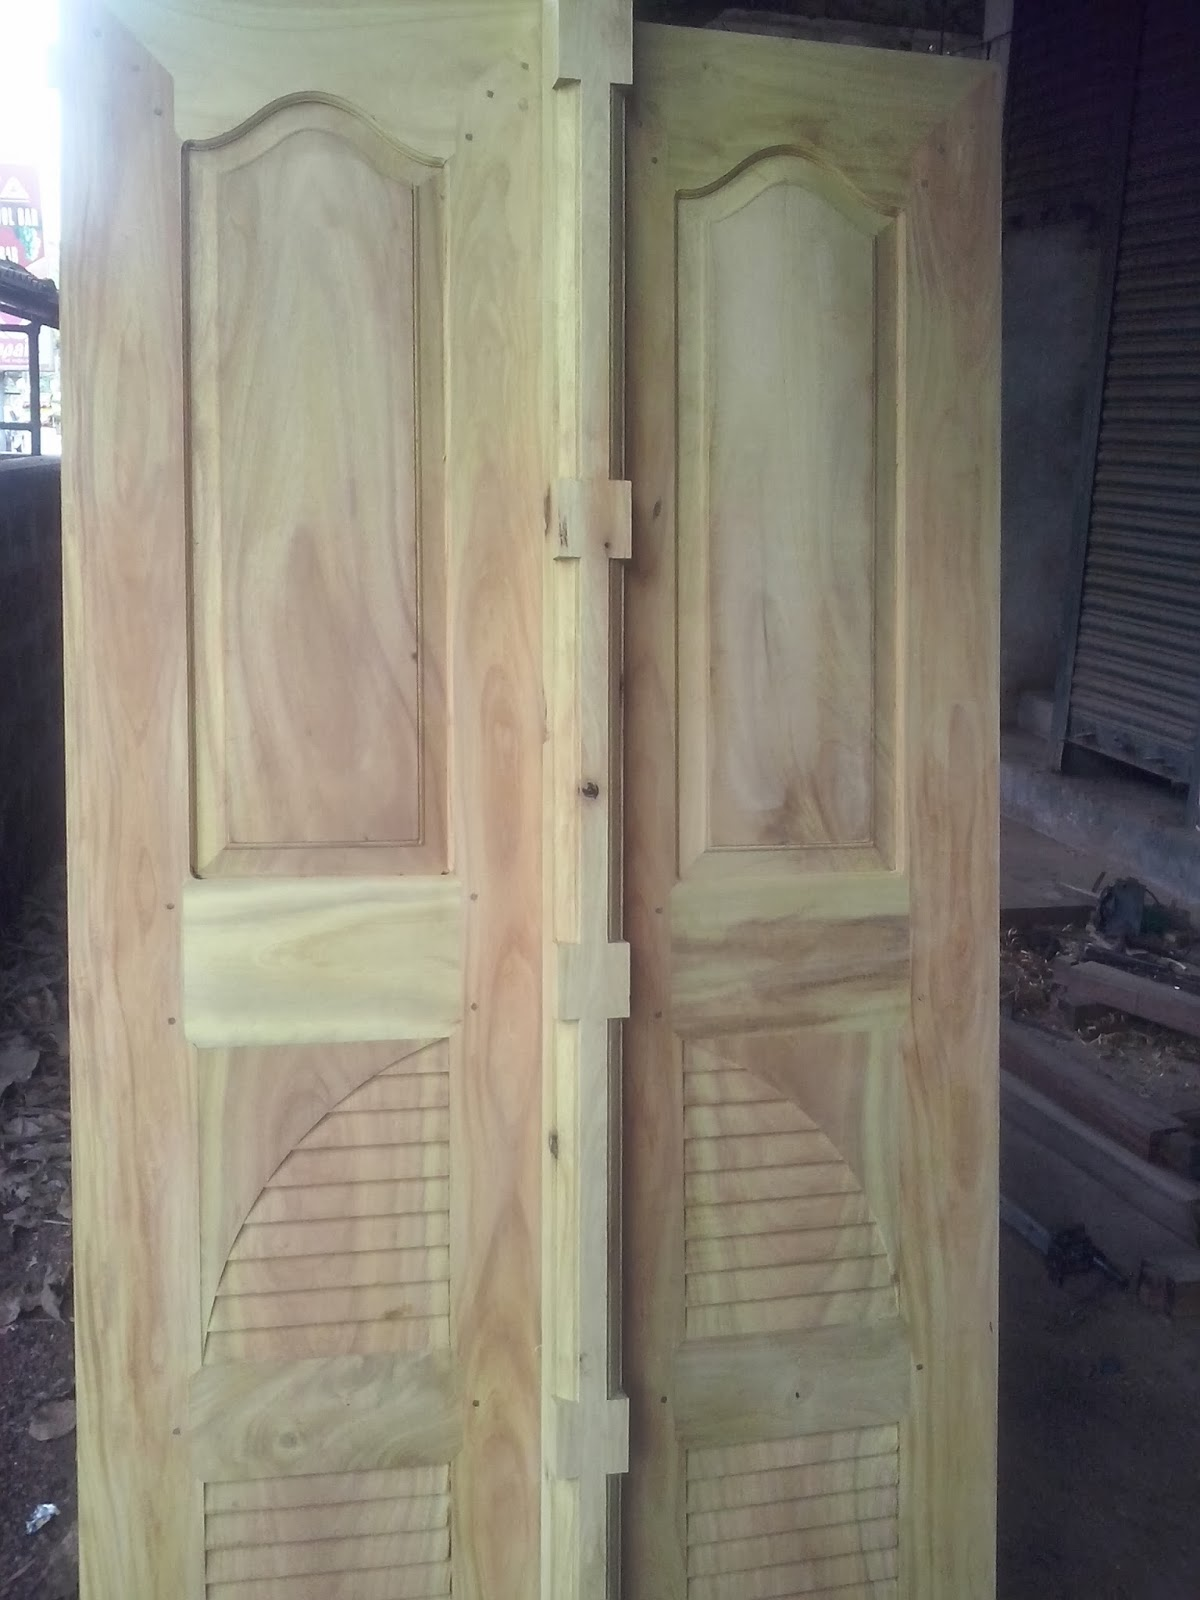 Bavas wood works main entrance wooden double door designs for Main two door designs